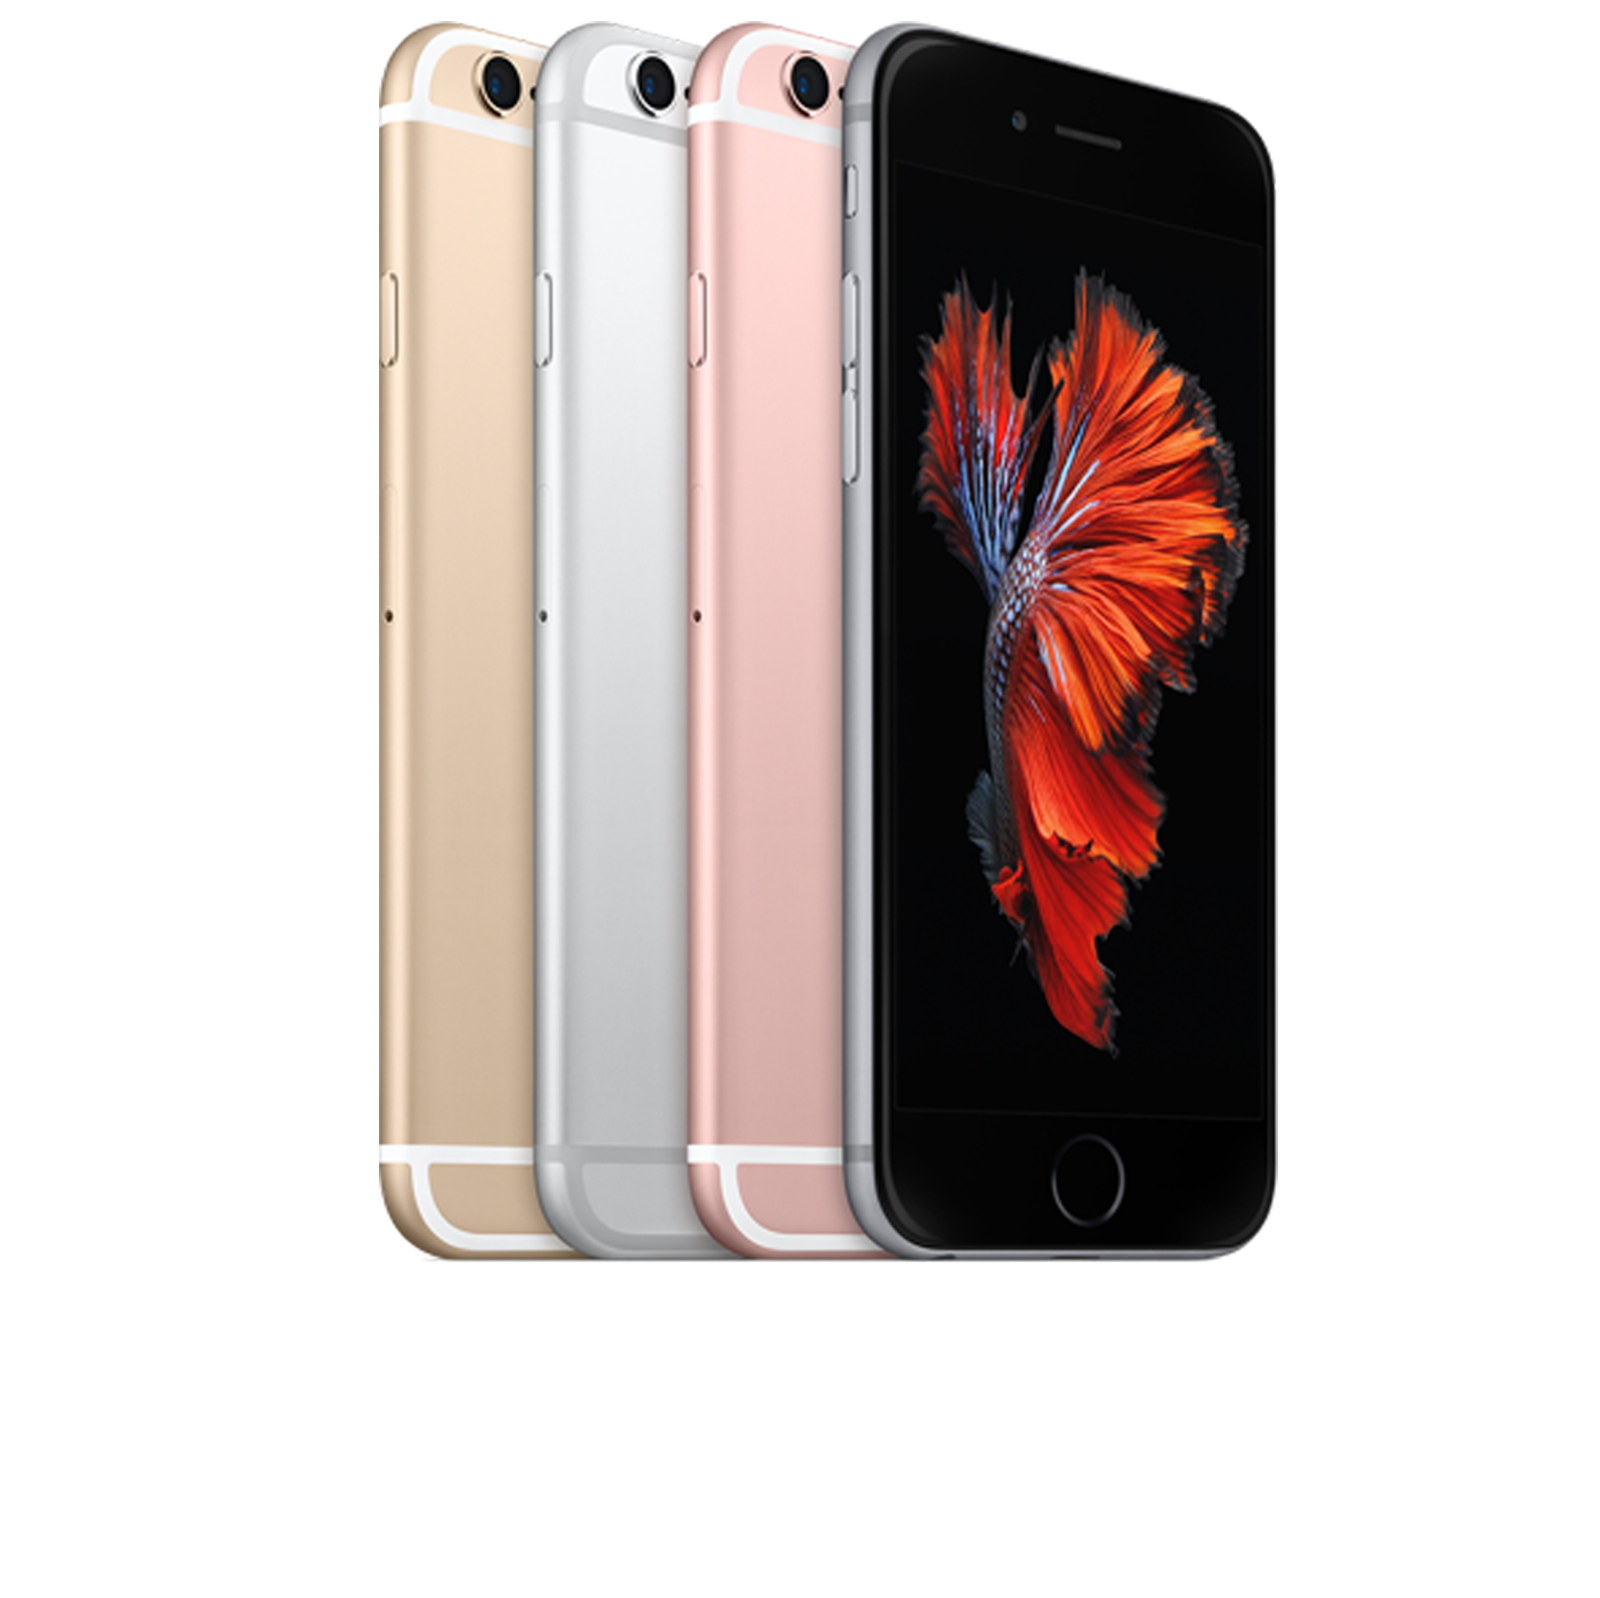 Iphone 7 plus all colors png. S everything you need